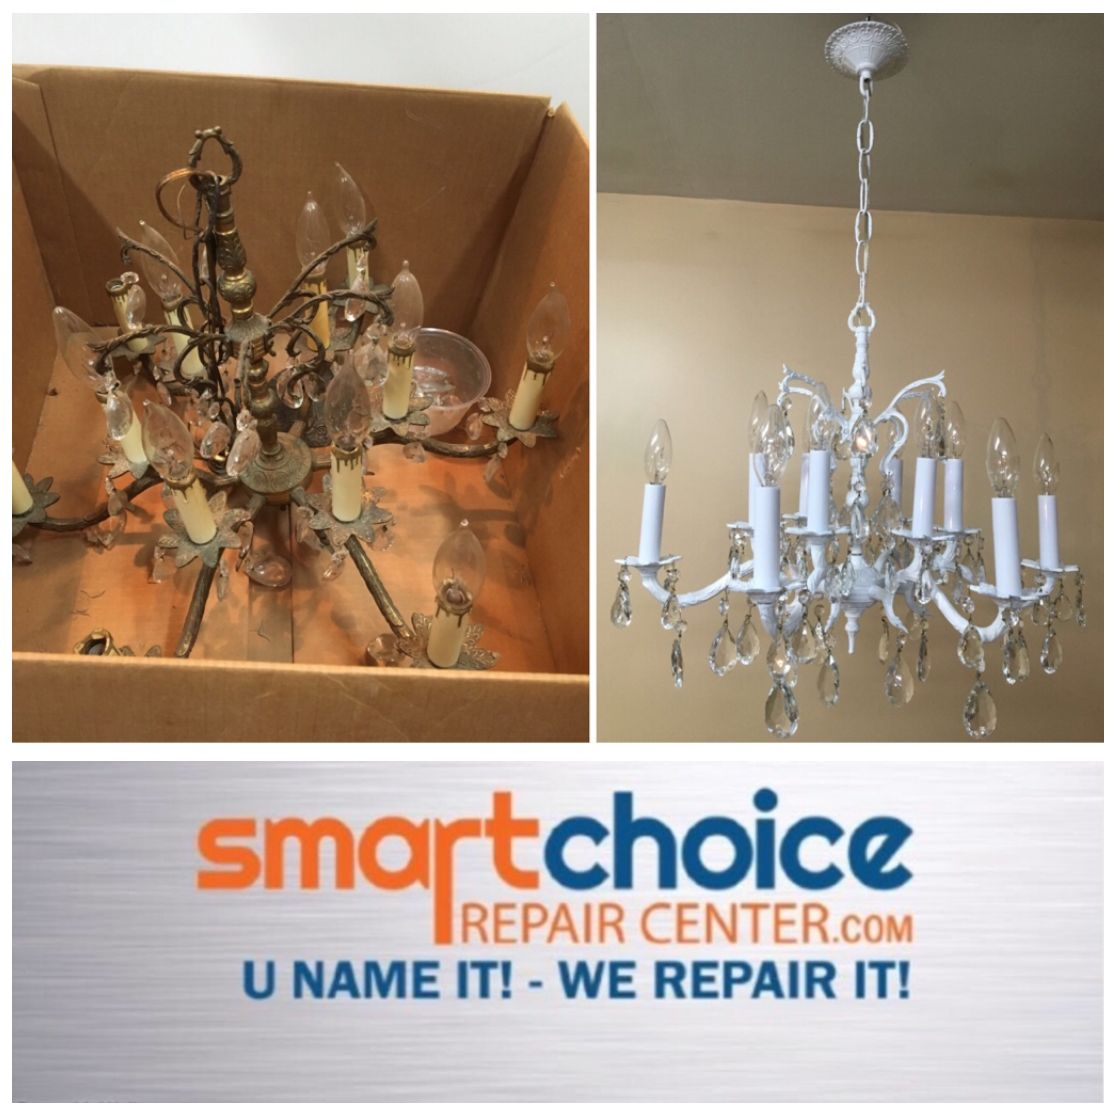 We Repair And Re All Types Of Chandeliers From Rusting Ling To Rewiring Are The Crystals Missing Or Need Cleaning Take A Picture Textit